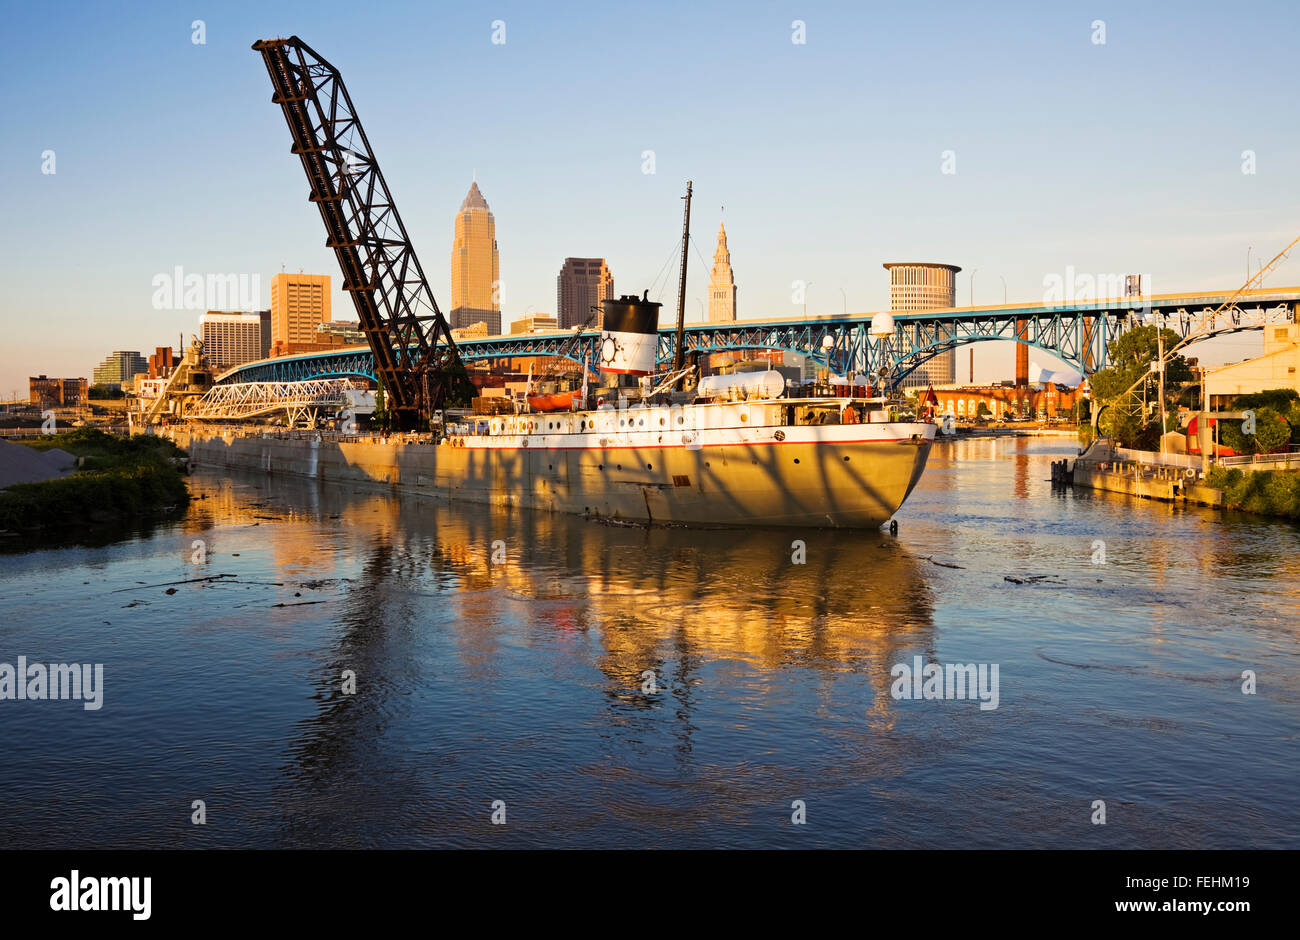 Large ship entering the port of Cleveland Stock Photo